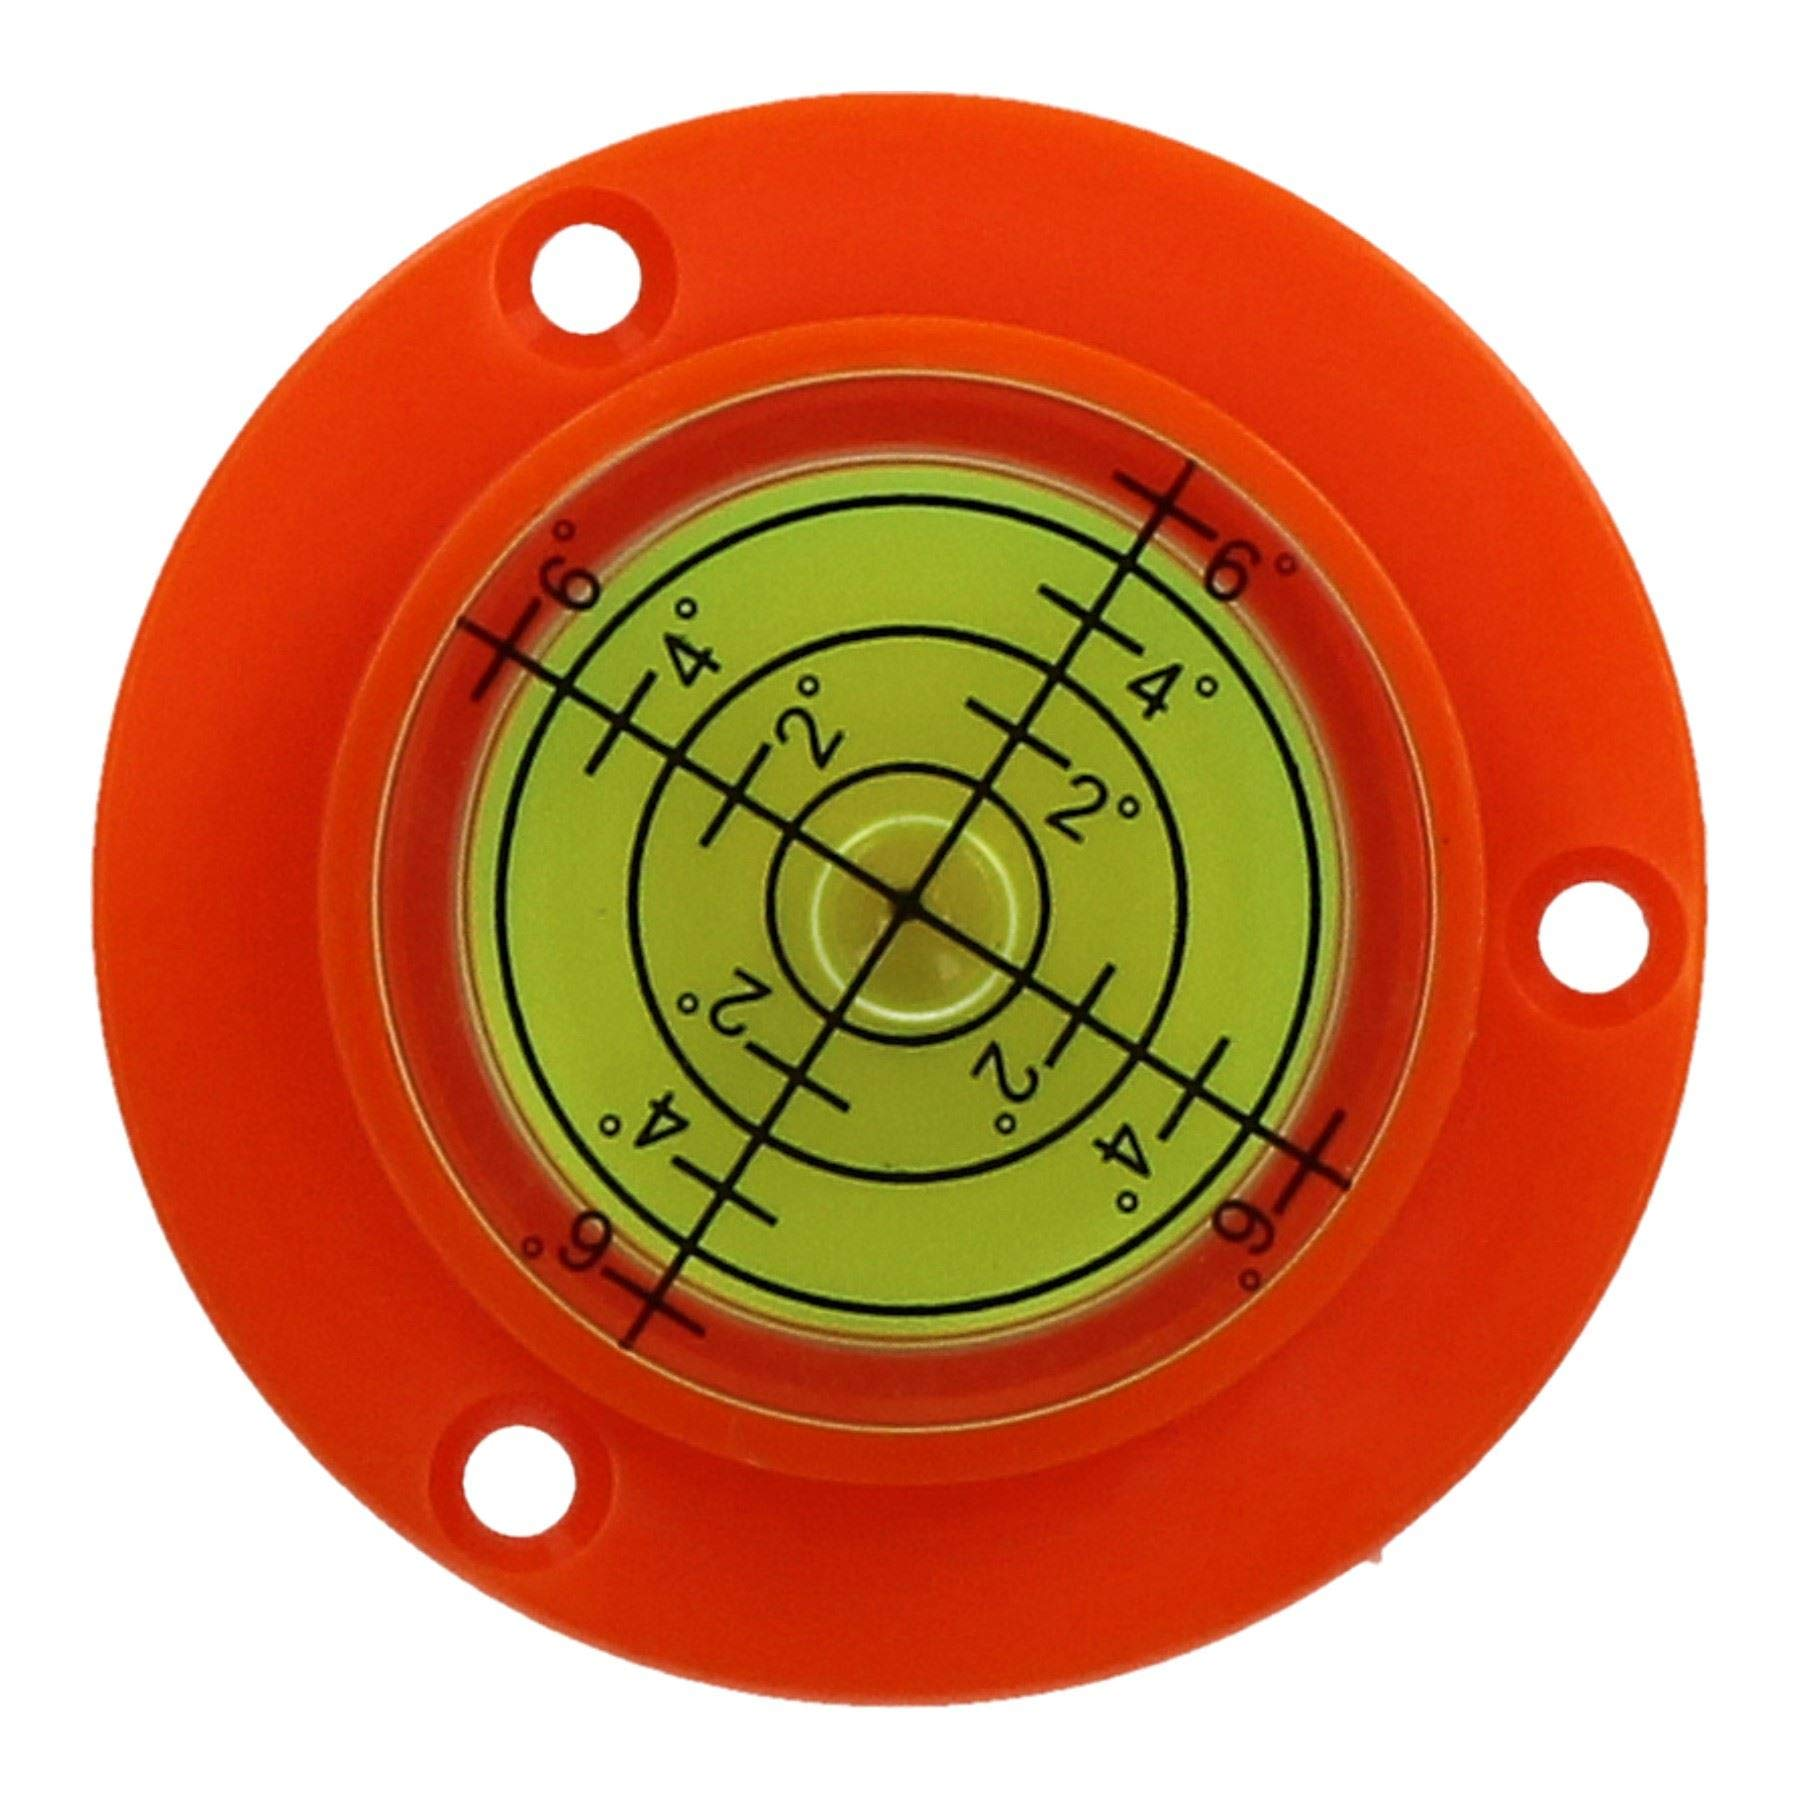 50mm Bull Eye Level Spirit Bubble Orbit Surface 0-6 degree Levelling Area